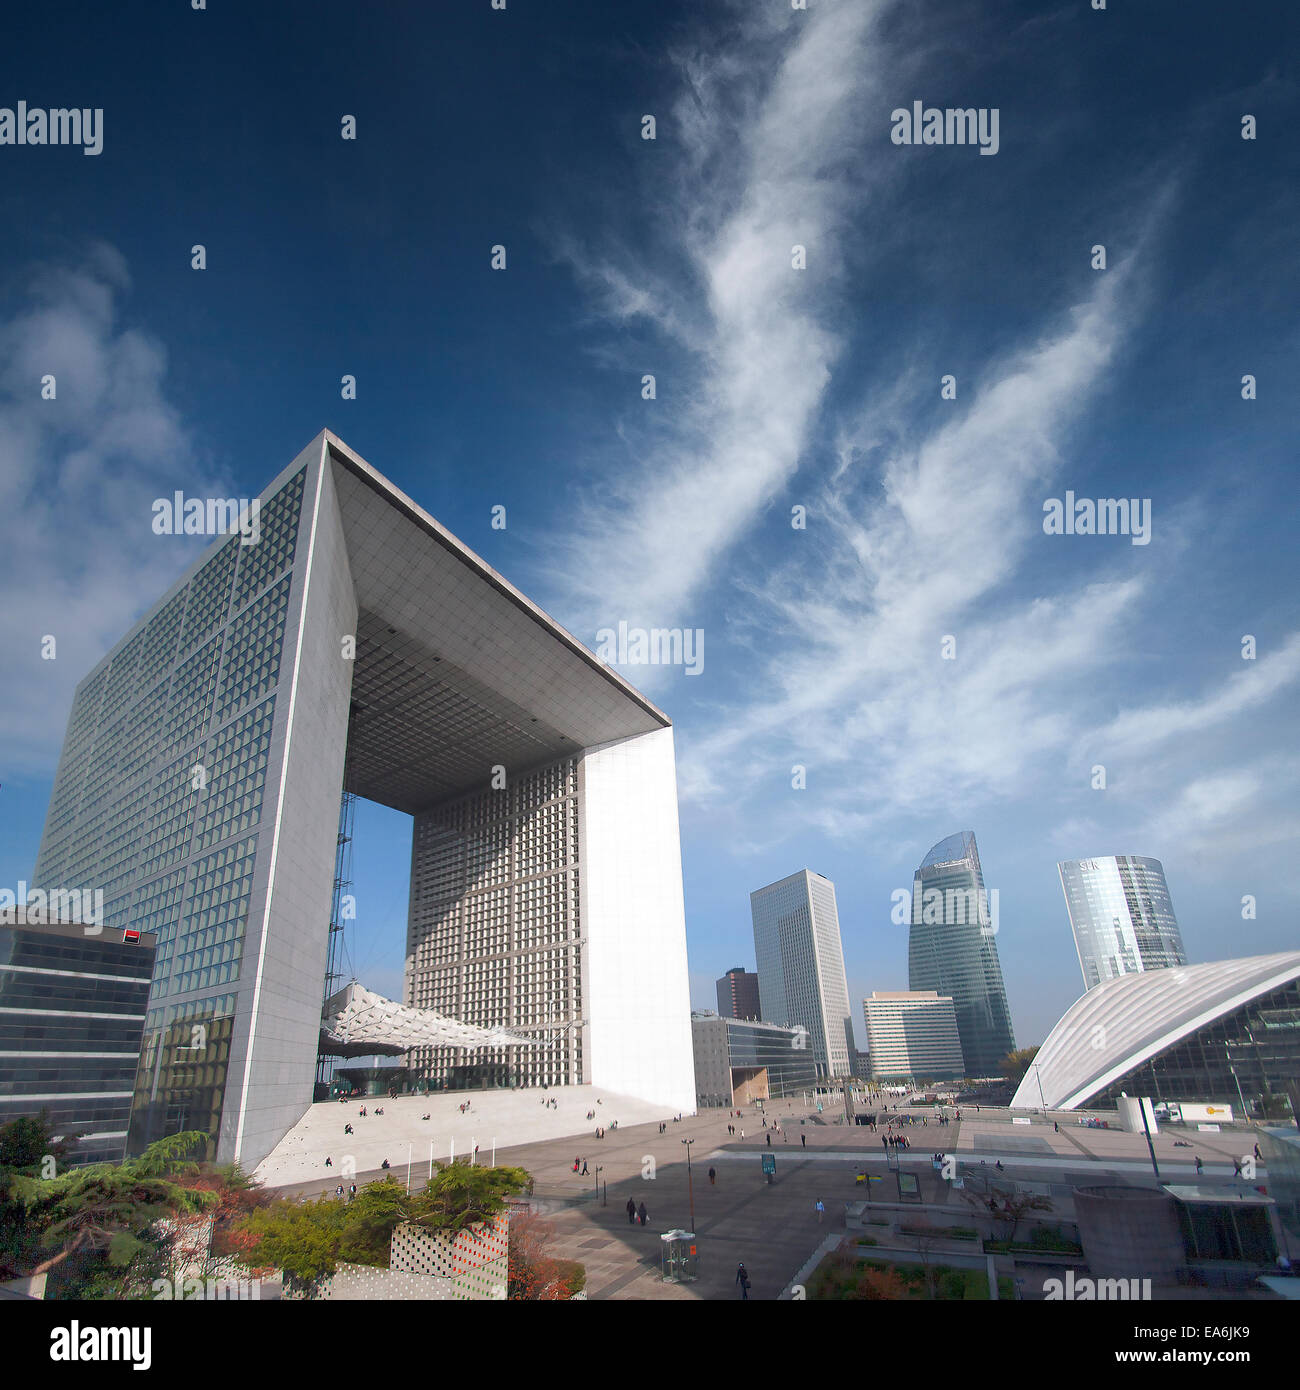 France, Paris, La Defense, Skyscrapers and clouds Stock Photo